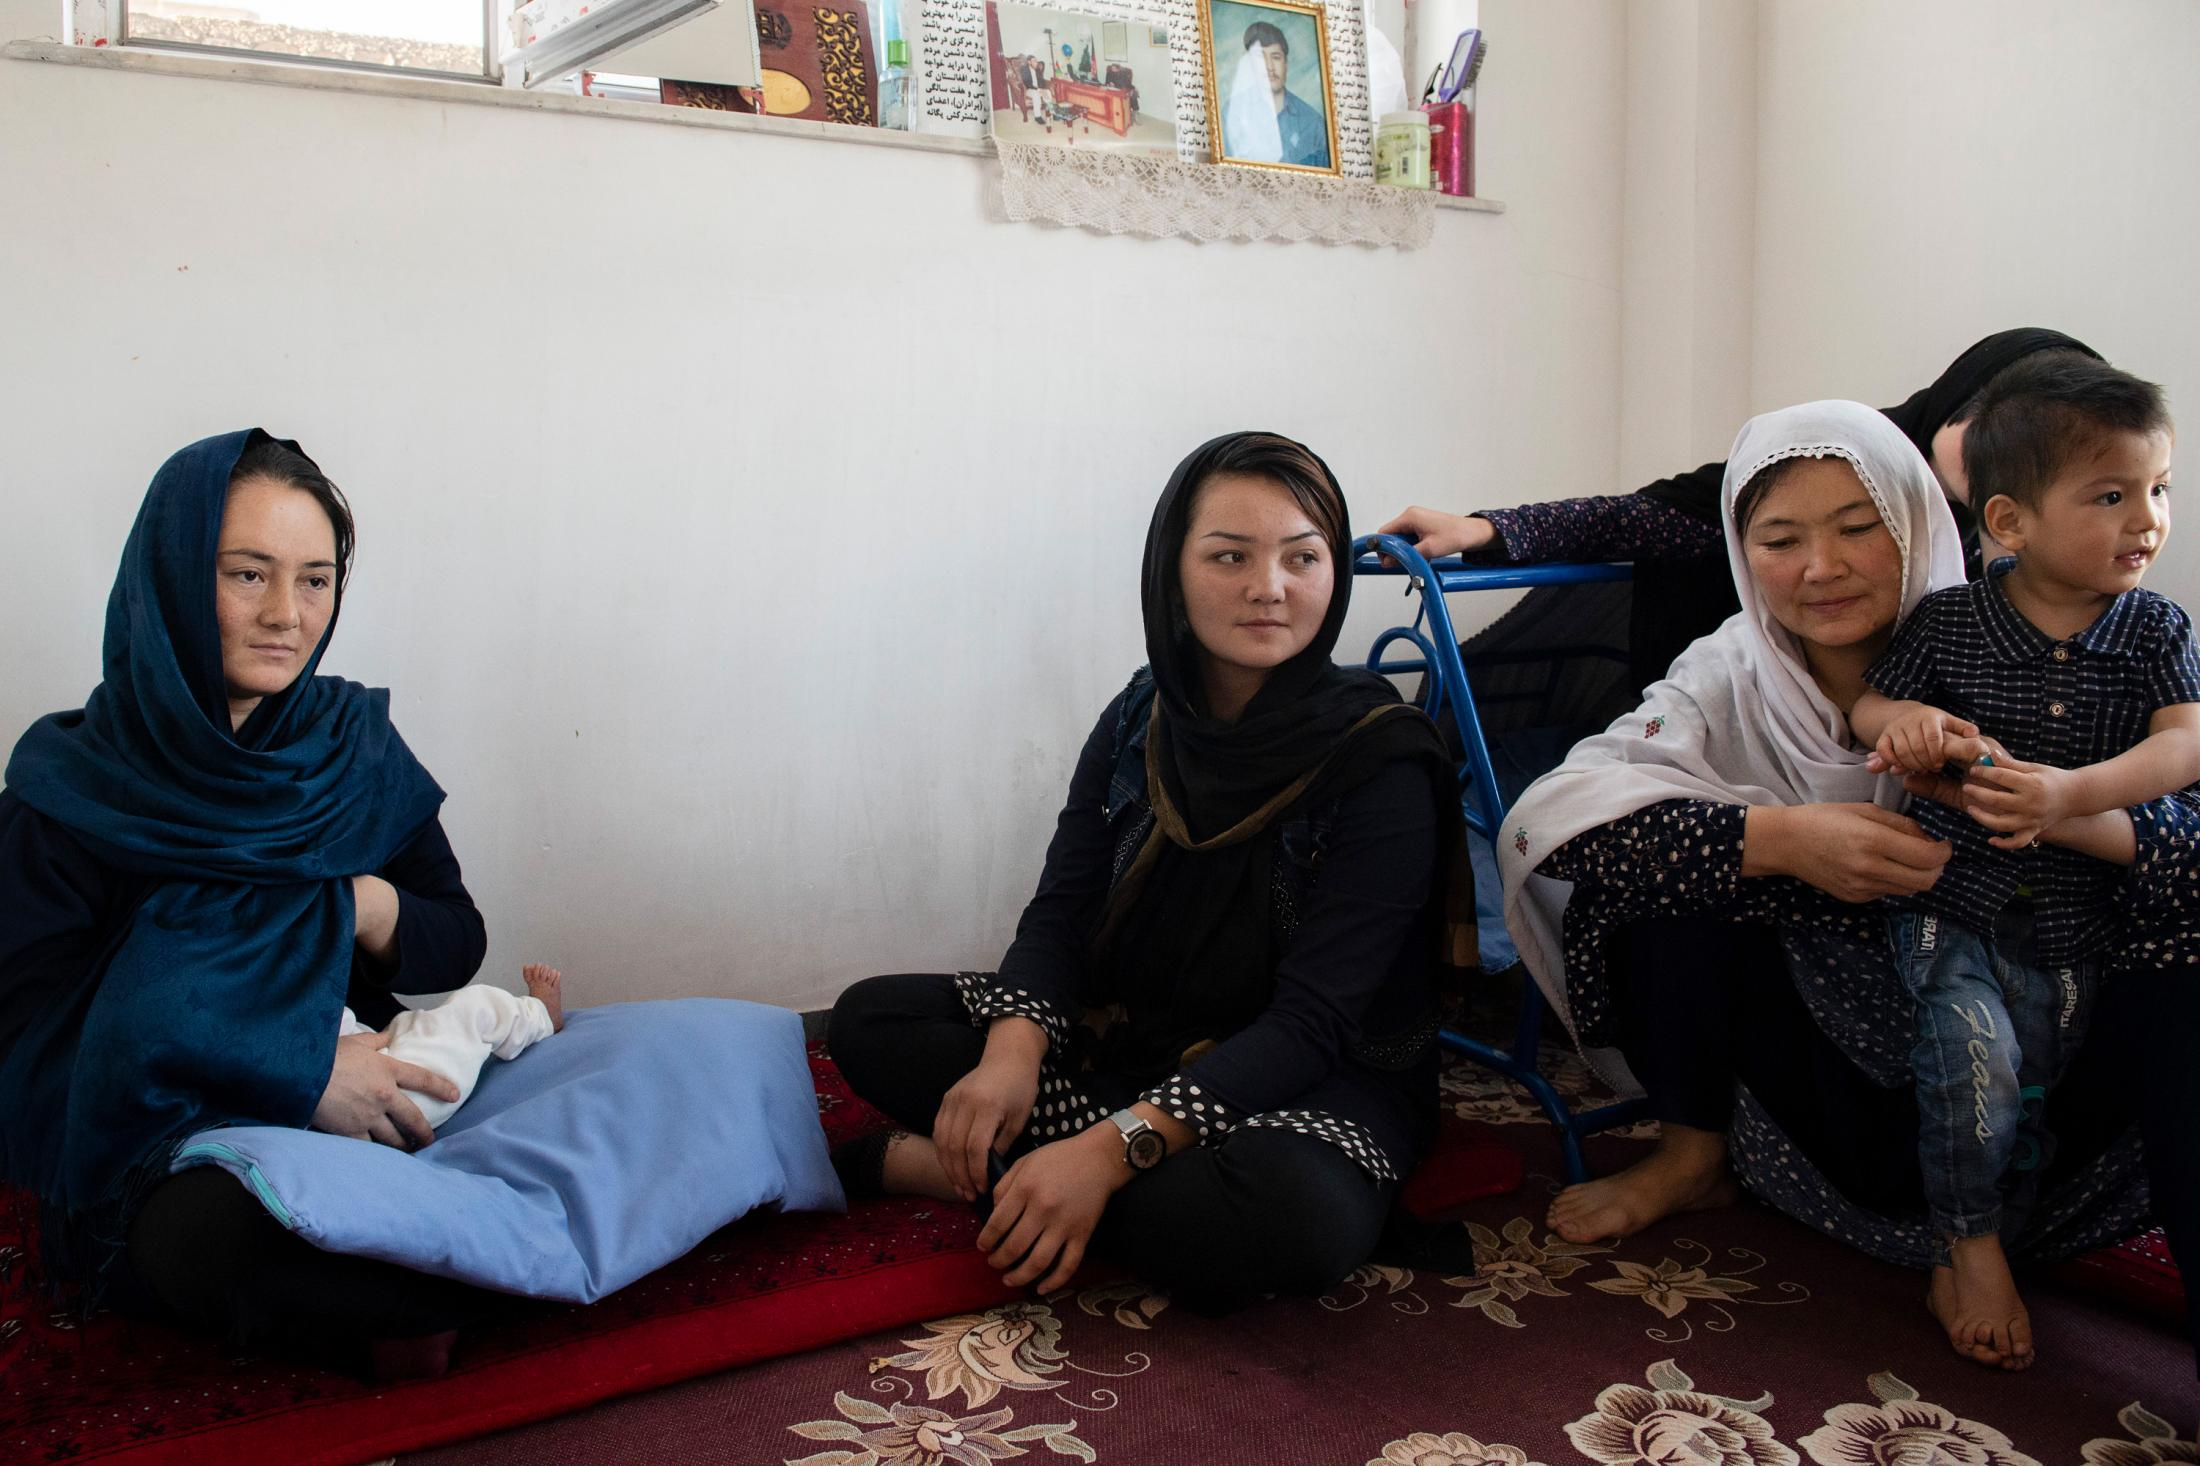 KABUL | AFGHANISTAN | 8/25/18 | Rahila (22) breastfeeds her 22-day-old daughter, Shamsia, who was named after her father Shams. Her sister, Reyhana, and her father-in-law had traveled all the way from their village in Ghazni to visit Rahila and her newborn daughter. While 5 months pregnant, Rahila's husband, Shams (37), was killed by Taliban in Ghazni province. Kiana Hayeri for the New York Times